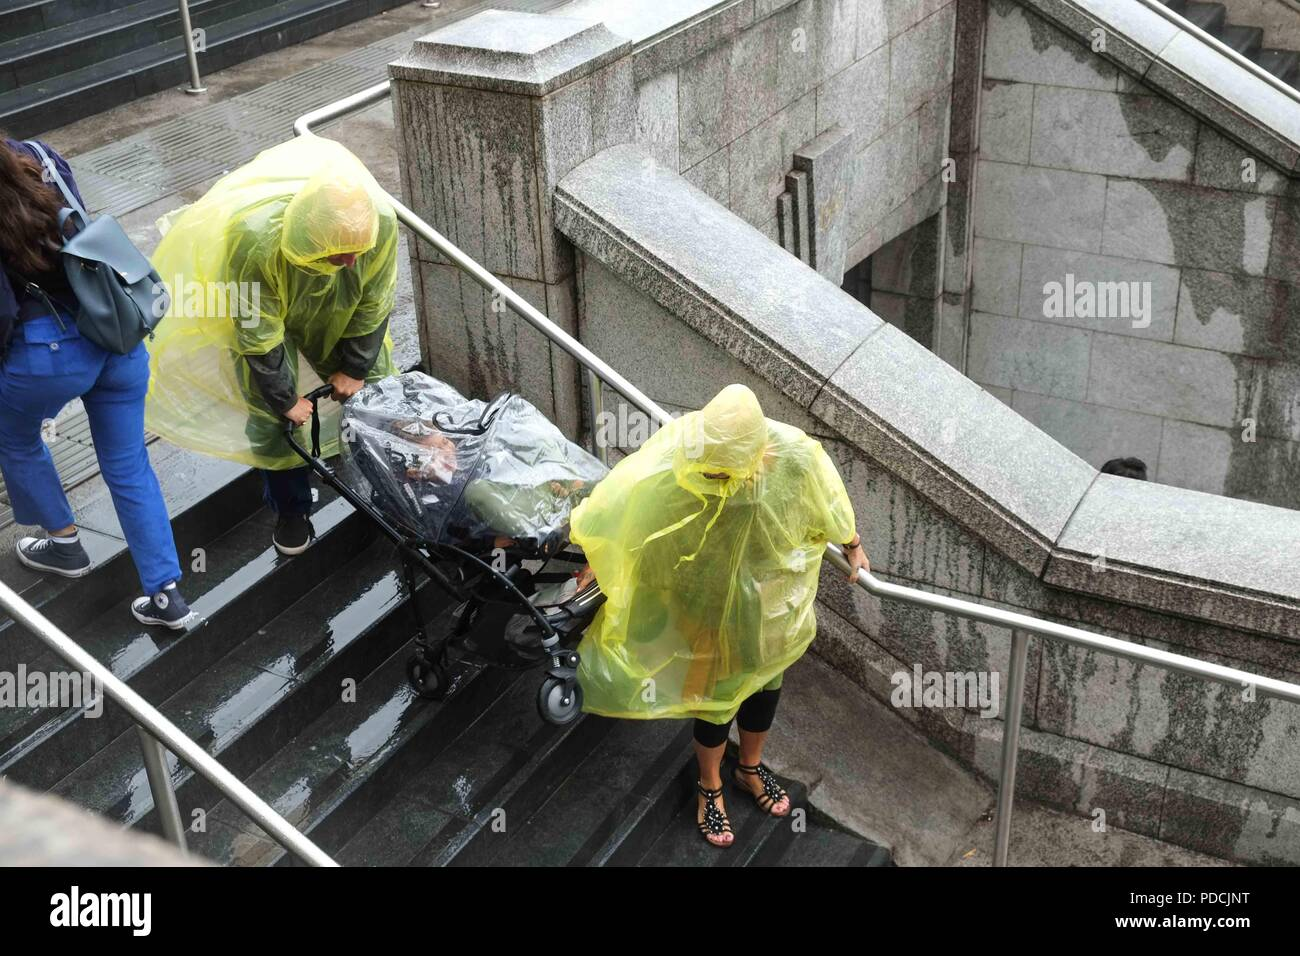 London 9th August 2018:  A couple carry a push chair down a flight of stairs on Westminster Bridge.Credit: Claire Doherty/Alamy Live News - Stock Image